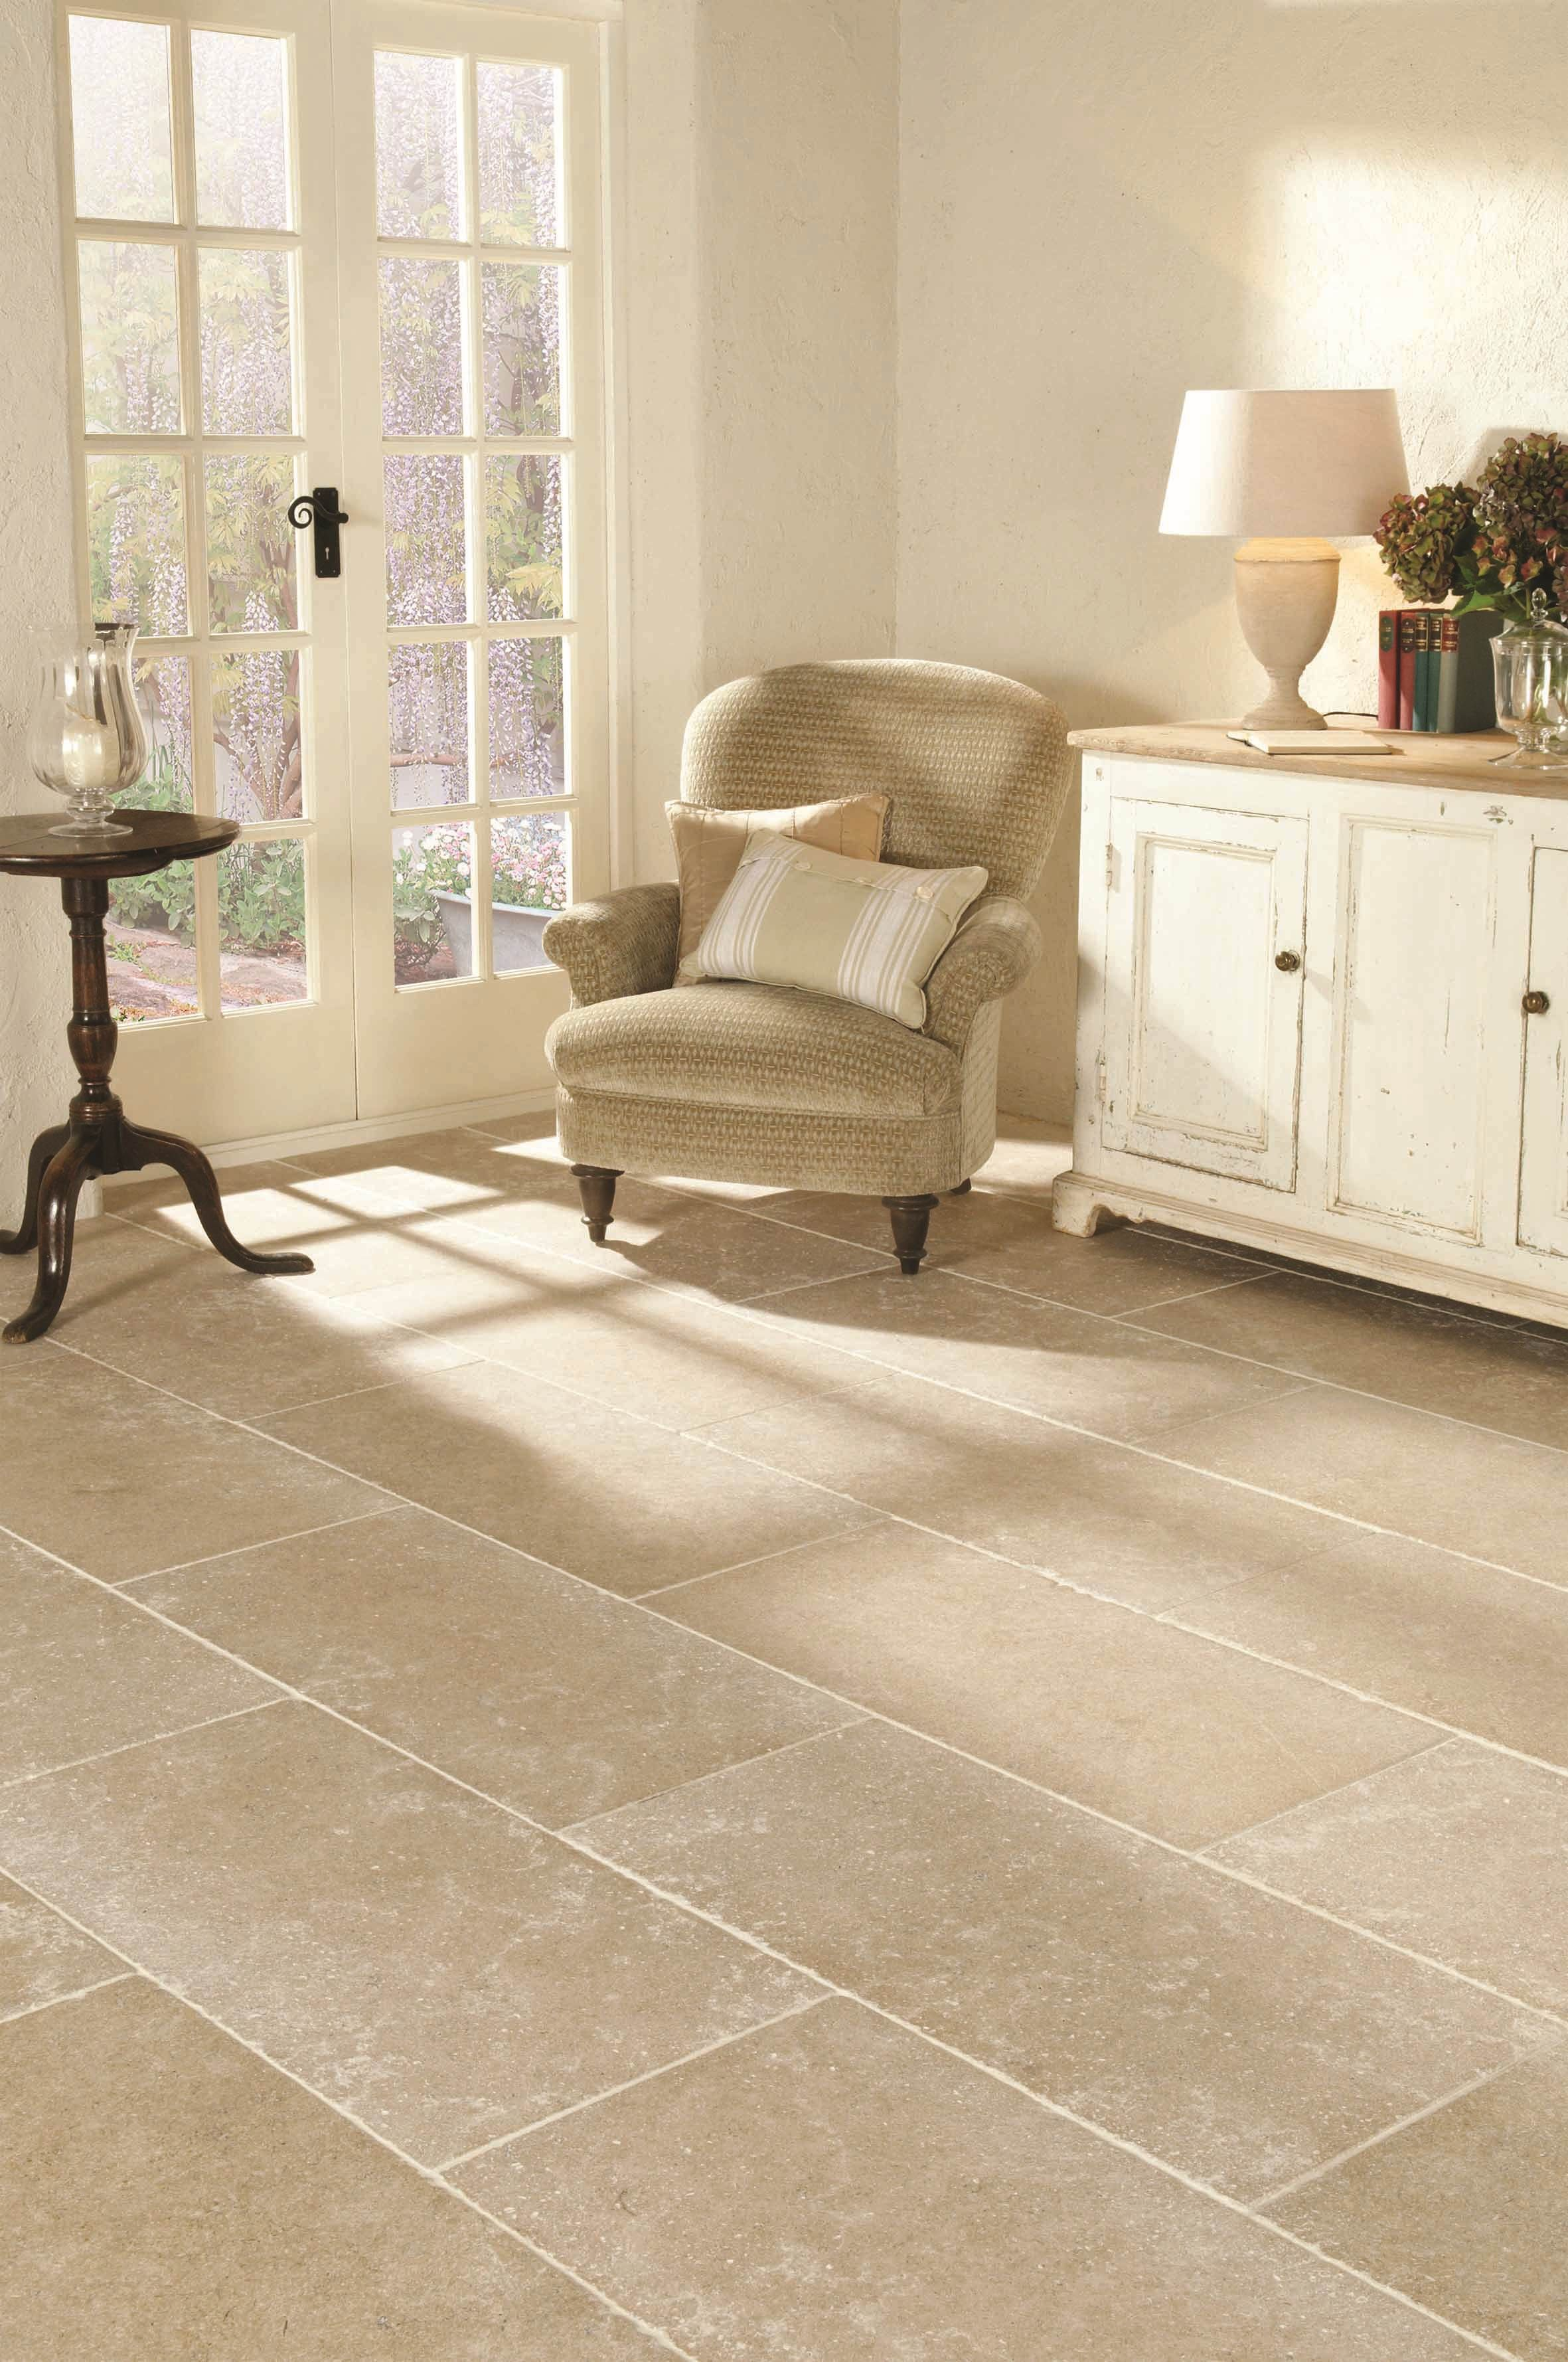 St sernin tumbled limestone tiles from original styles earthworks interesting floor st sernin tumbled limestone tiles from original styles earthworks range these large format tiles look great in open spaces doublecrazyfo Image collections